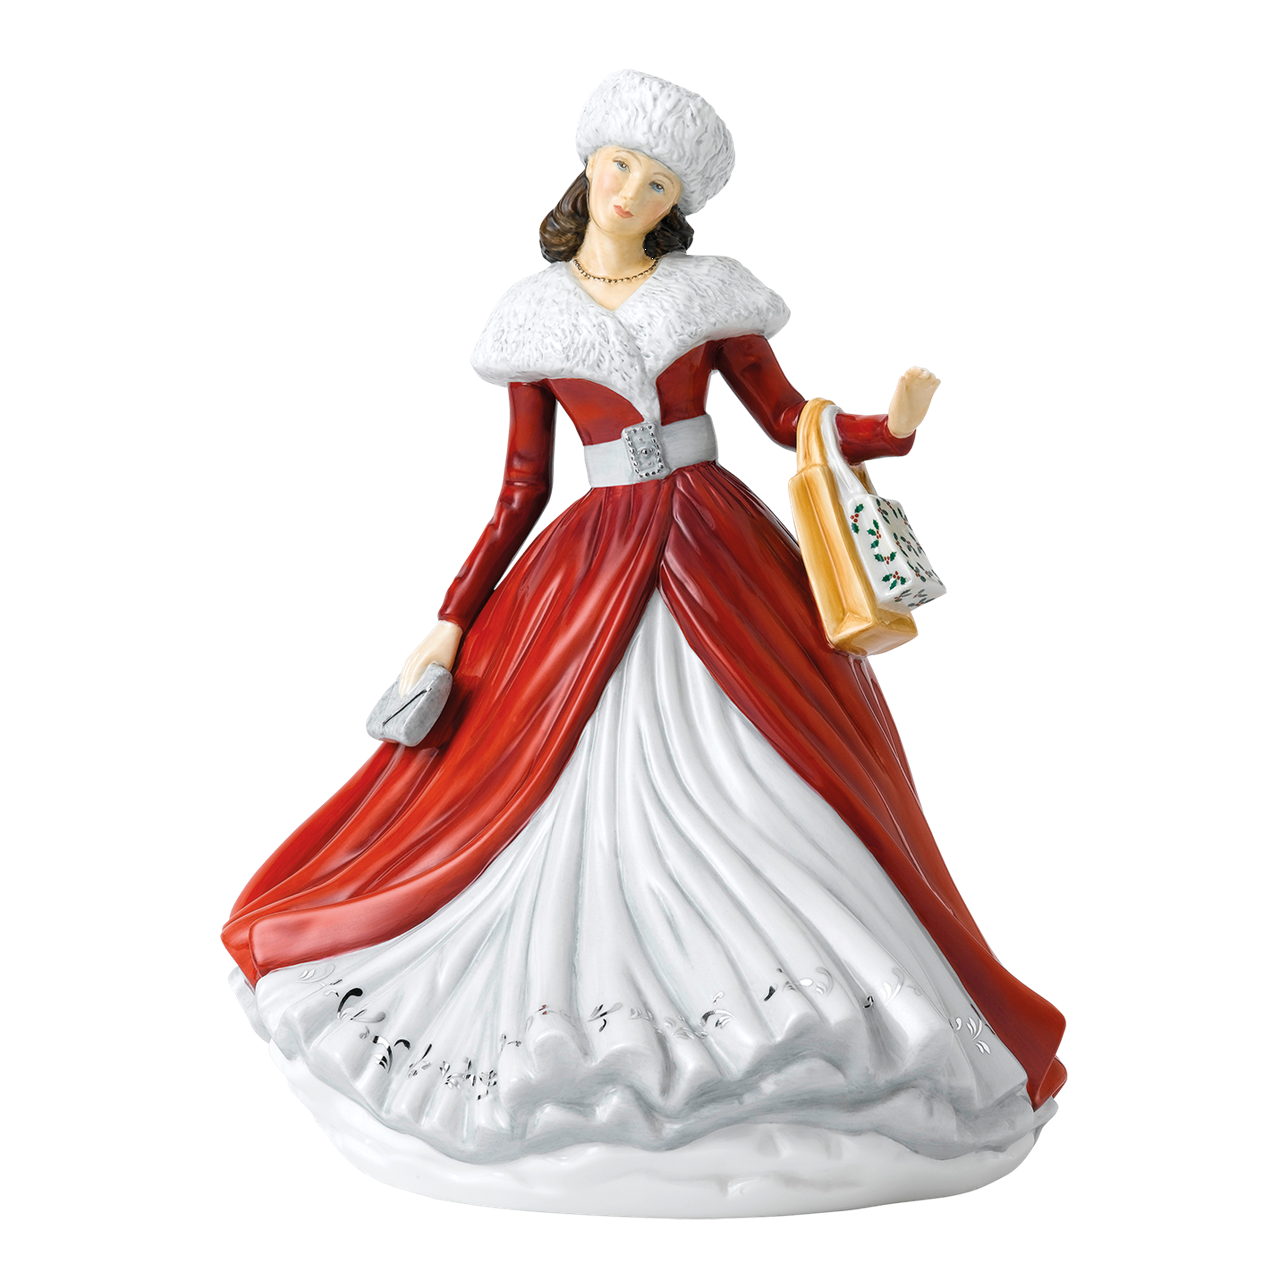 Annual Christmas Figure of the year 2019: The Perfect Christmas Gift